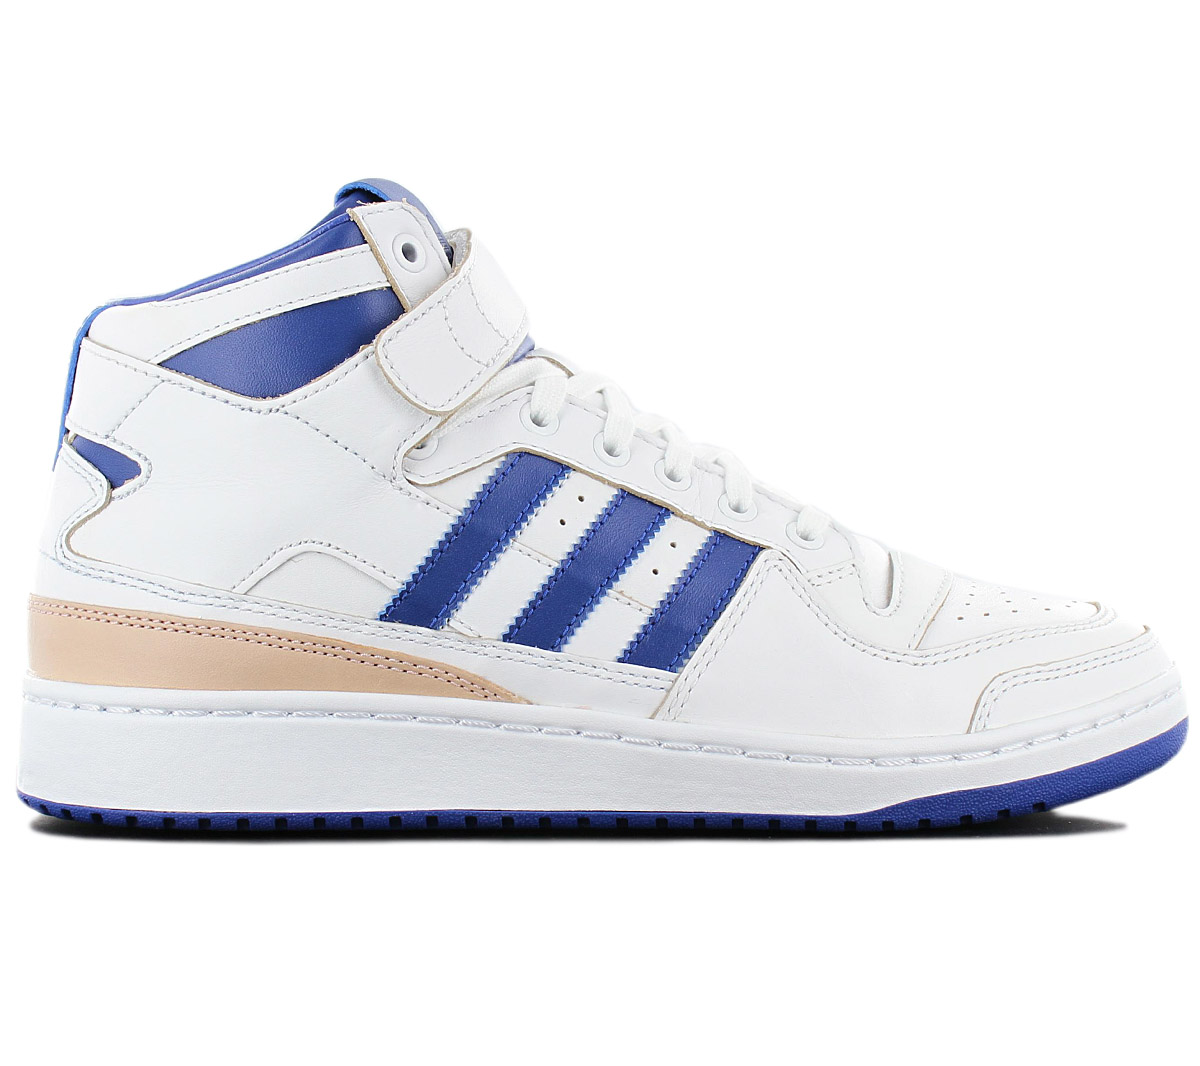 official photos 2a663 c3424 Adidas Originals Forum mid (Wrap) Bounce Men s Sneakers Shoes By4412 ...